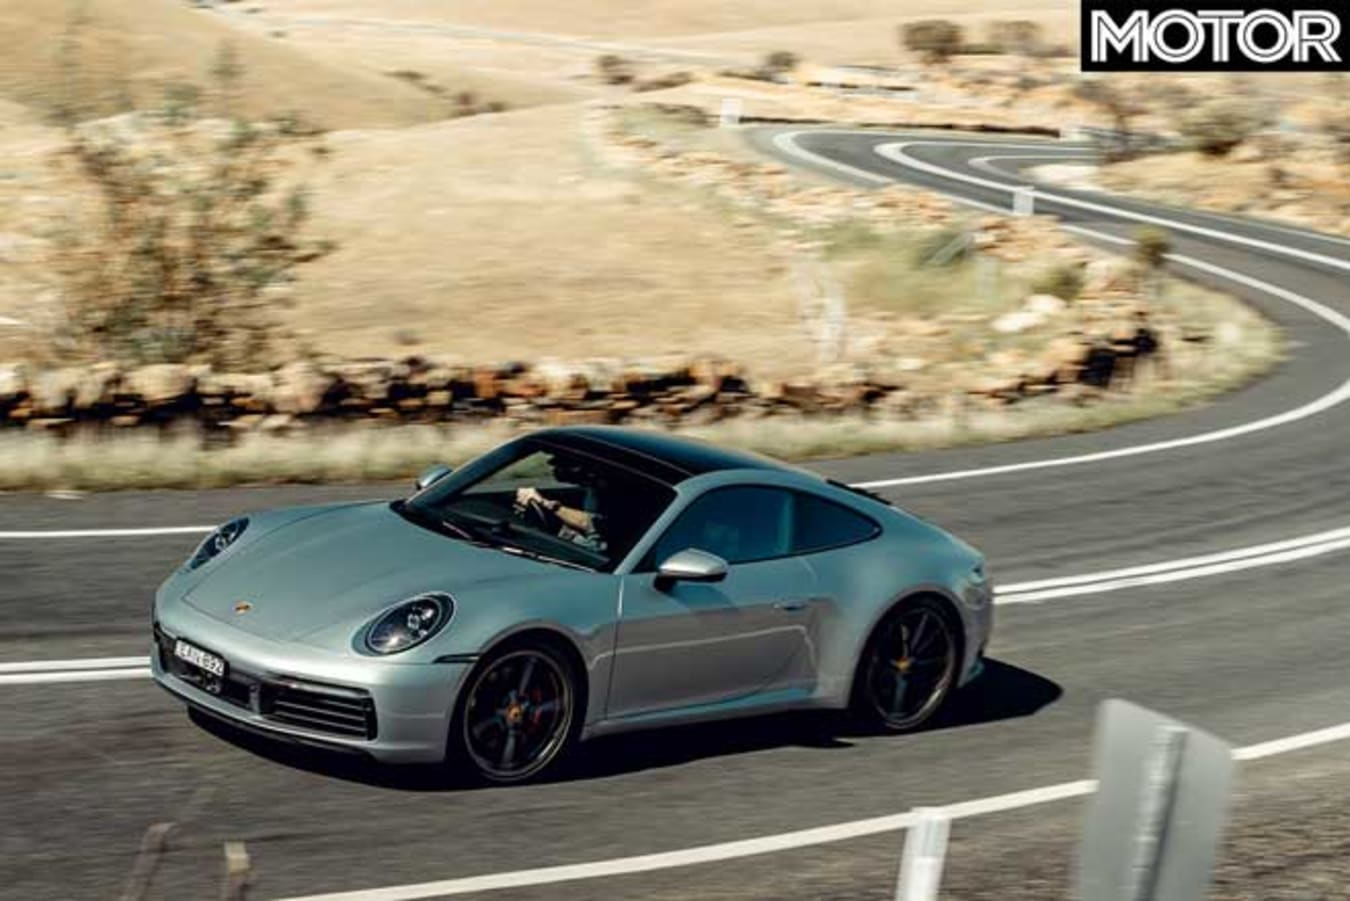 Performance Car Of The Year 2020 Road Course Porsche 992 911 Carrera S Review Jpg